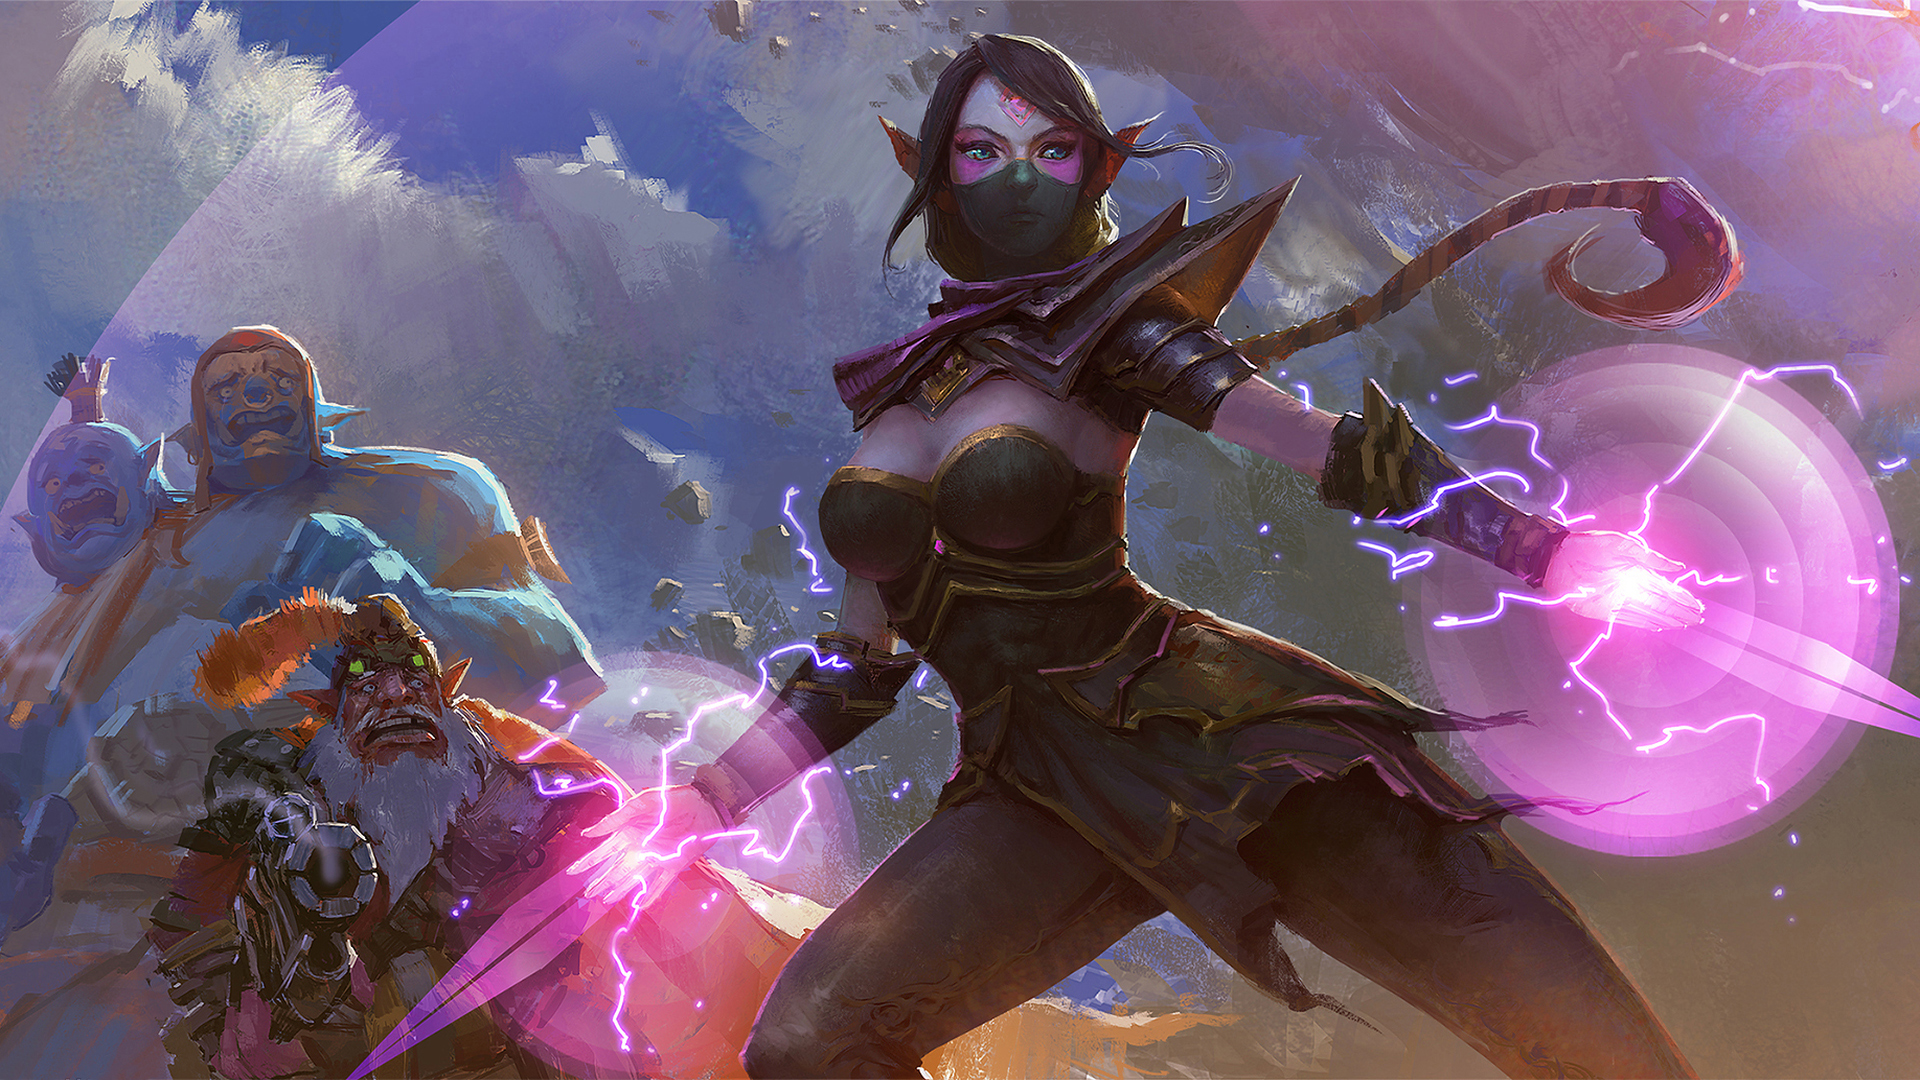 Lanaya the Templar Assassin 87 Wallpaper HD